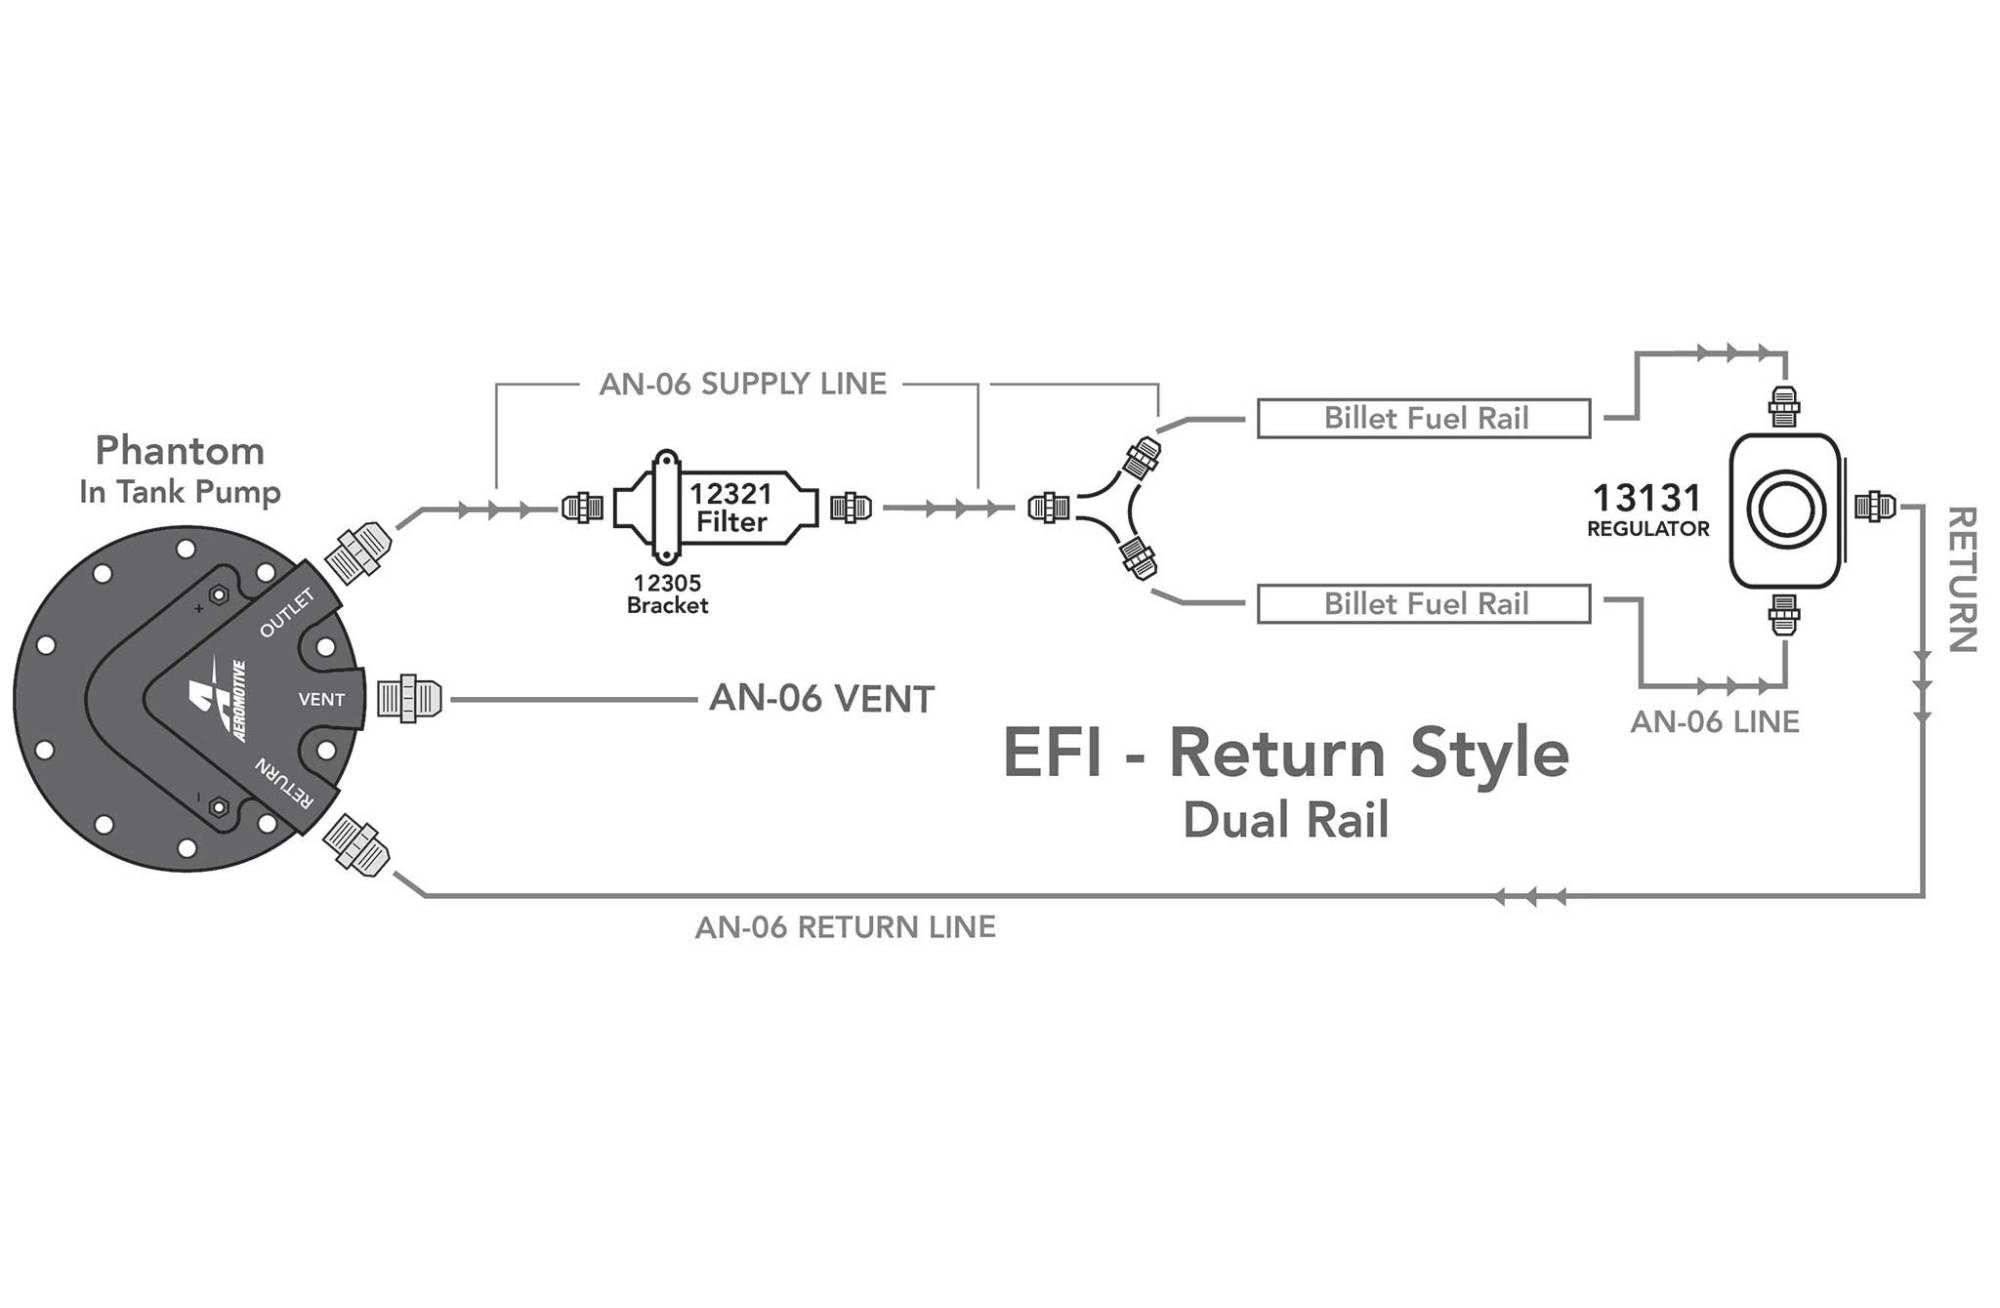 hight resolution of 1965 ford mustang fuel system diagram wiring diagram m6 1974 ford mustang fuel system diagram